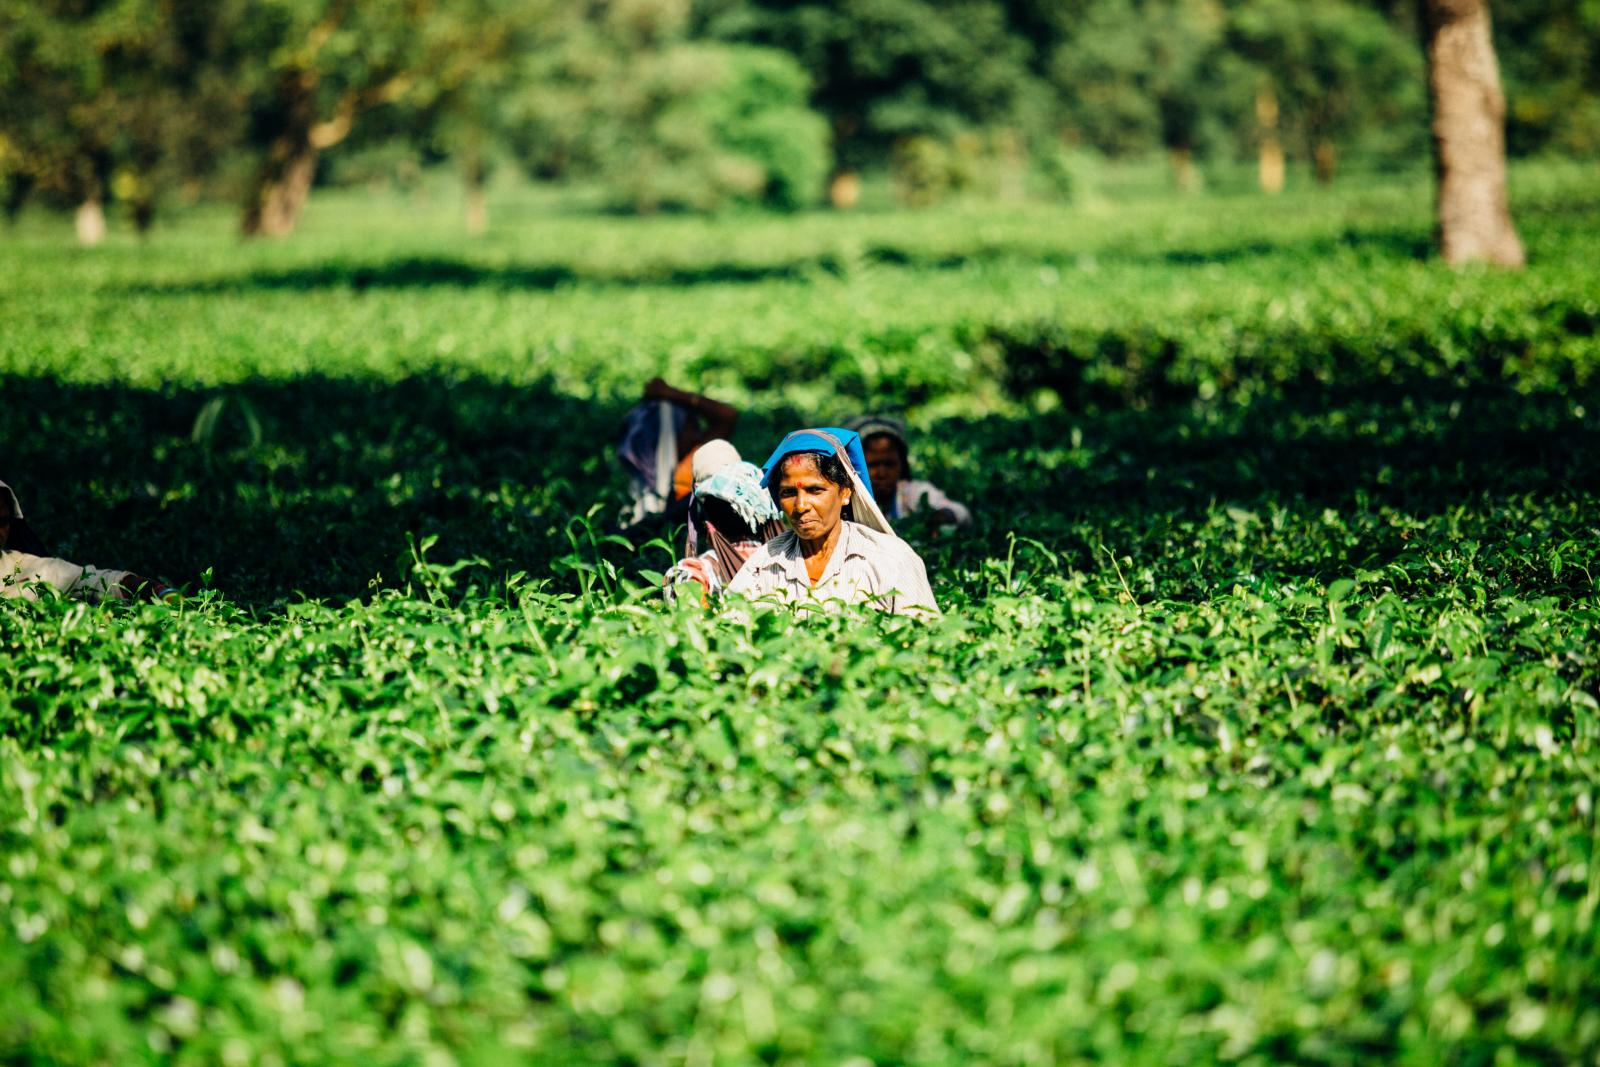 Farm workers in India. Photo credit: Pexels